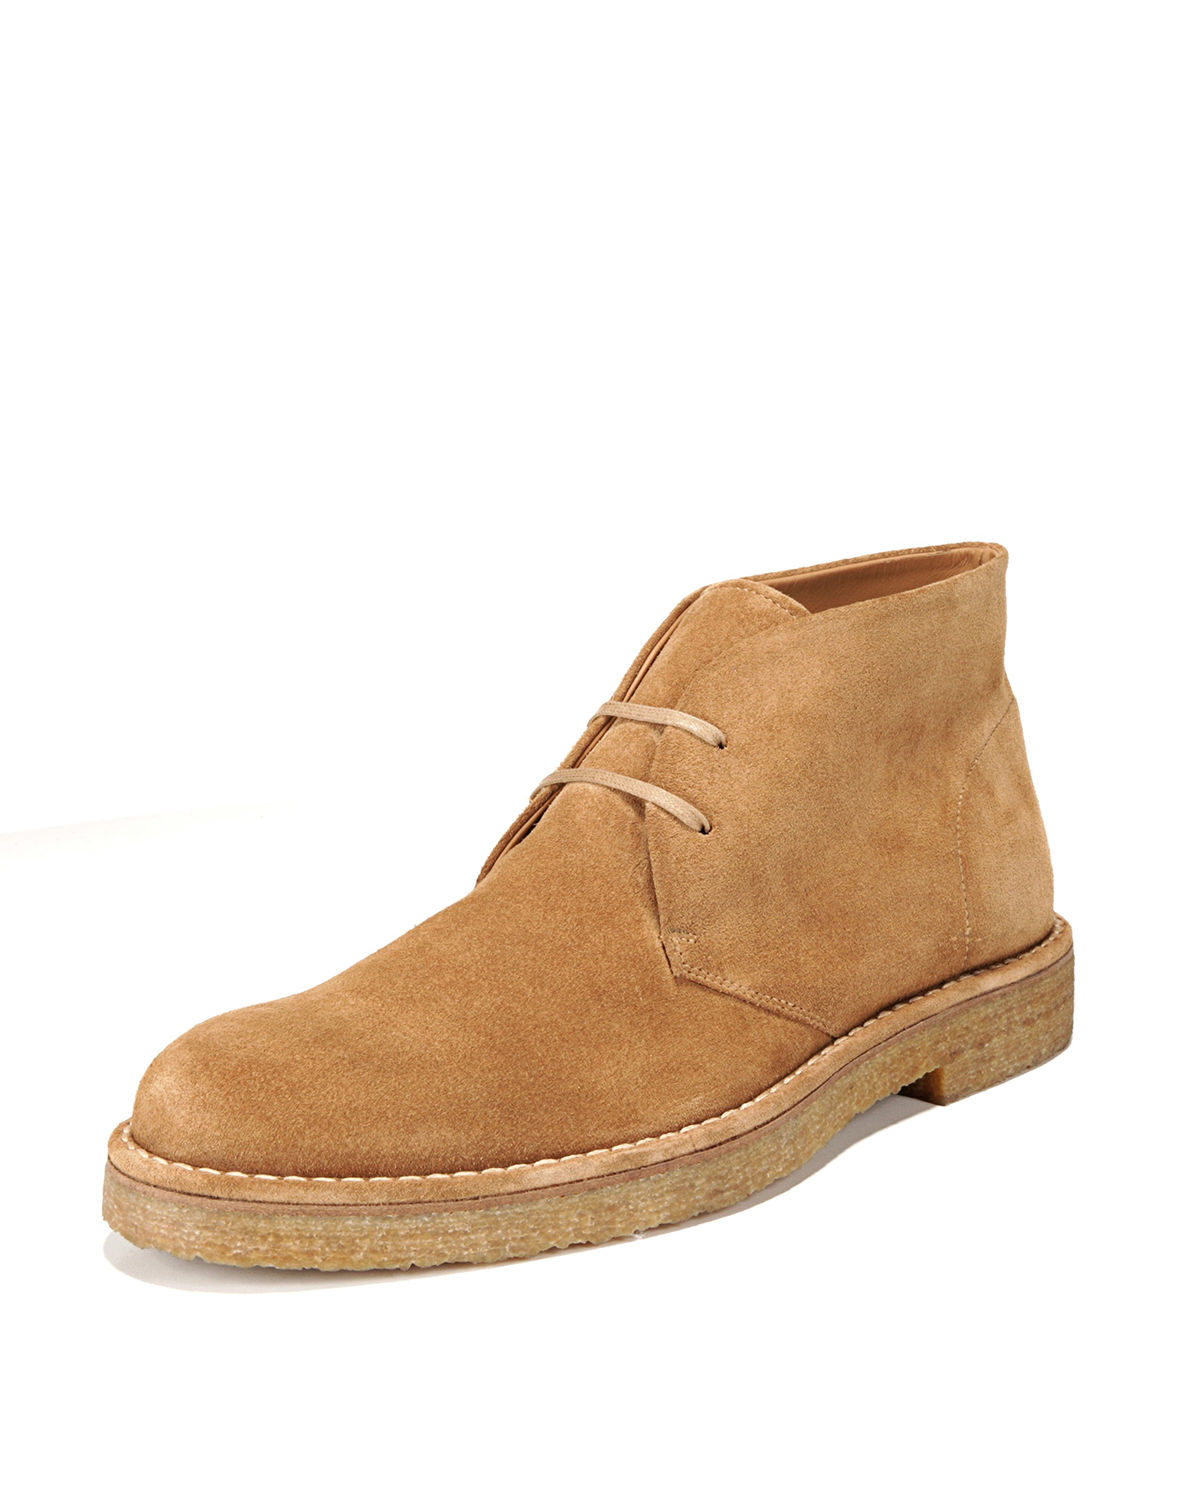 Men's Crofton Crepe Sole Chukka Boots by Vince